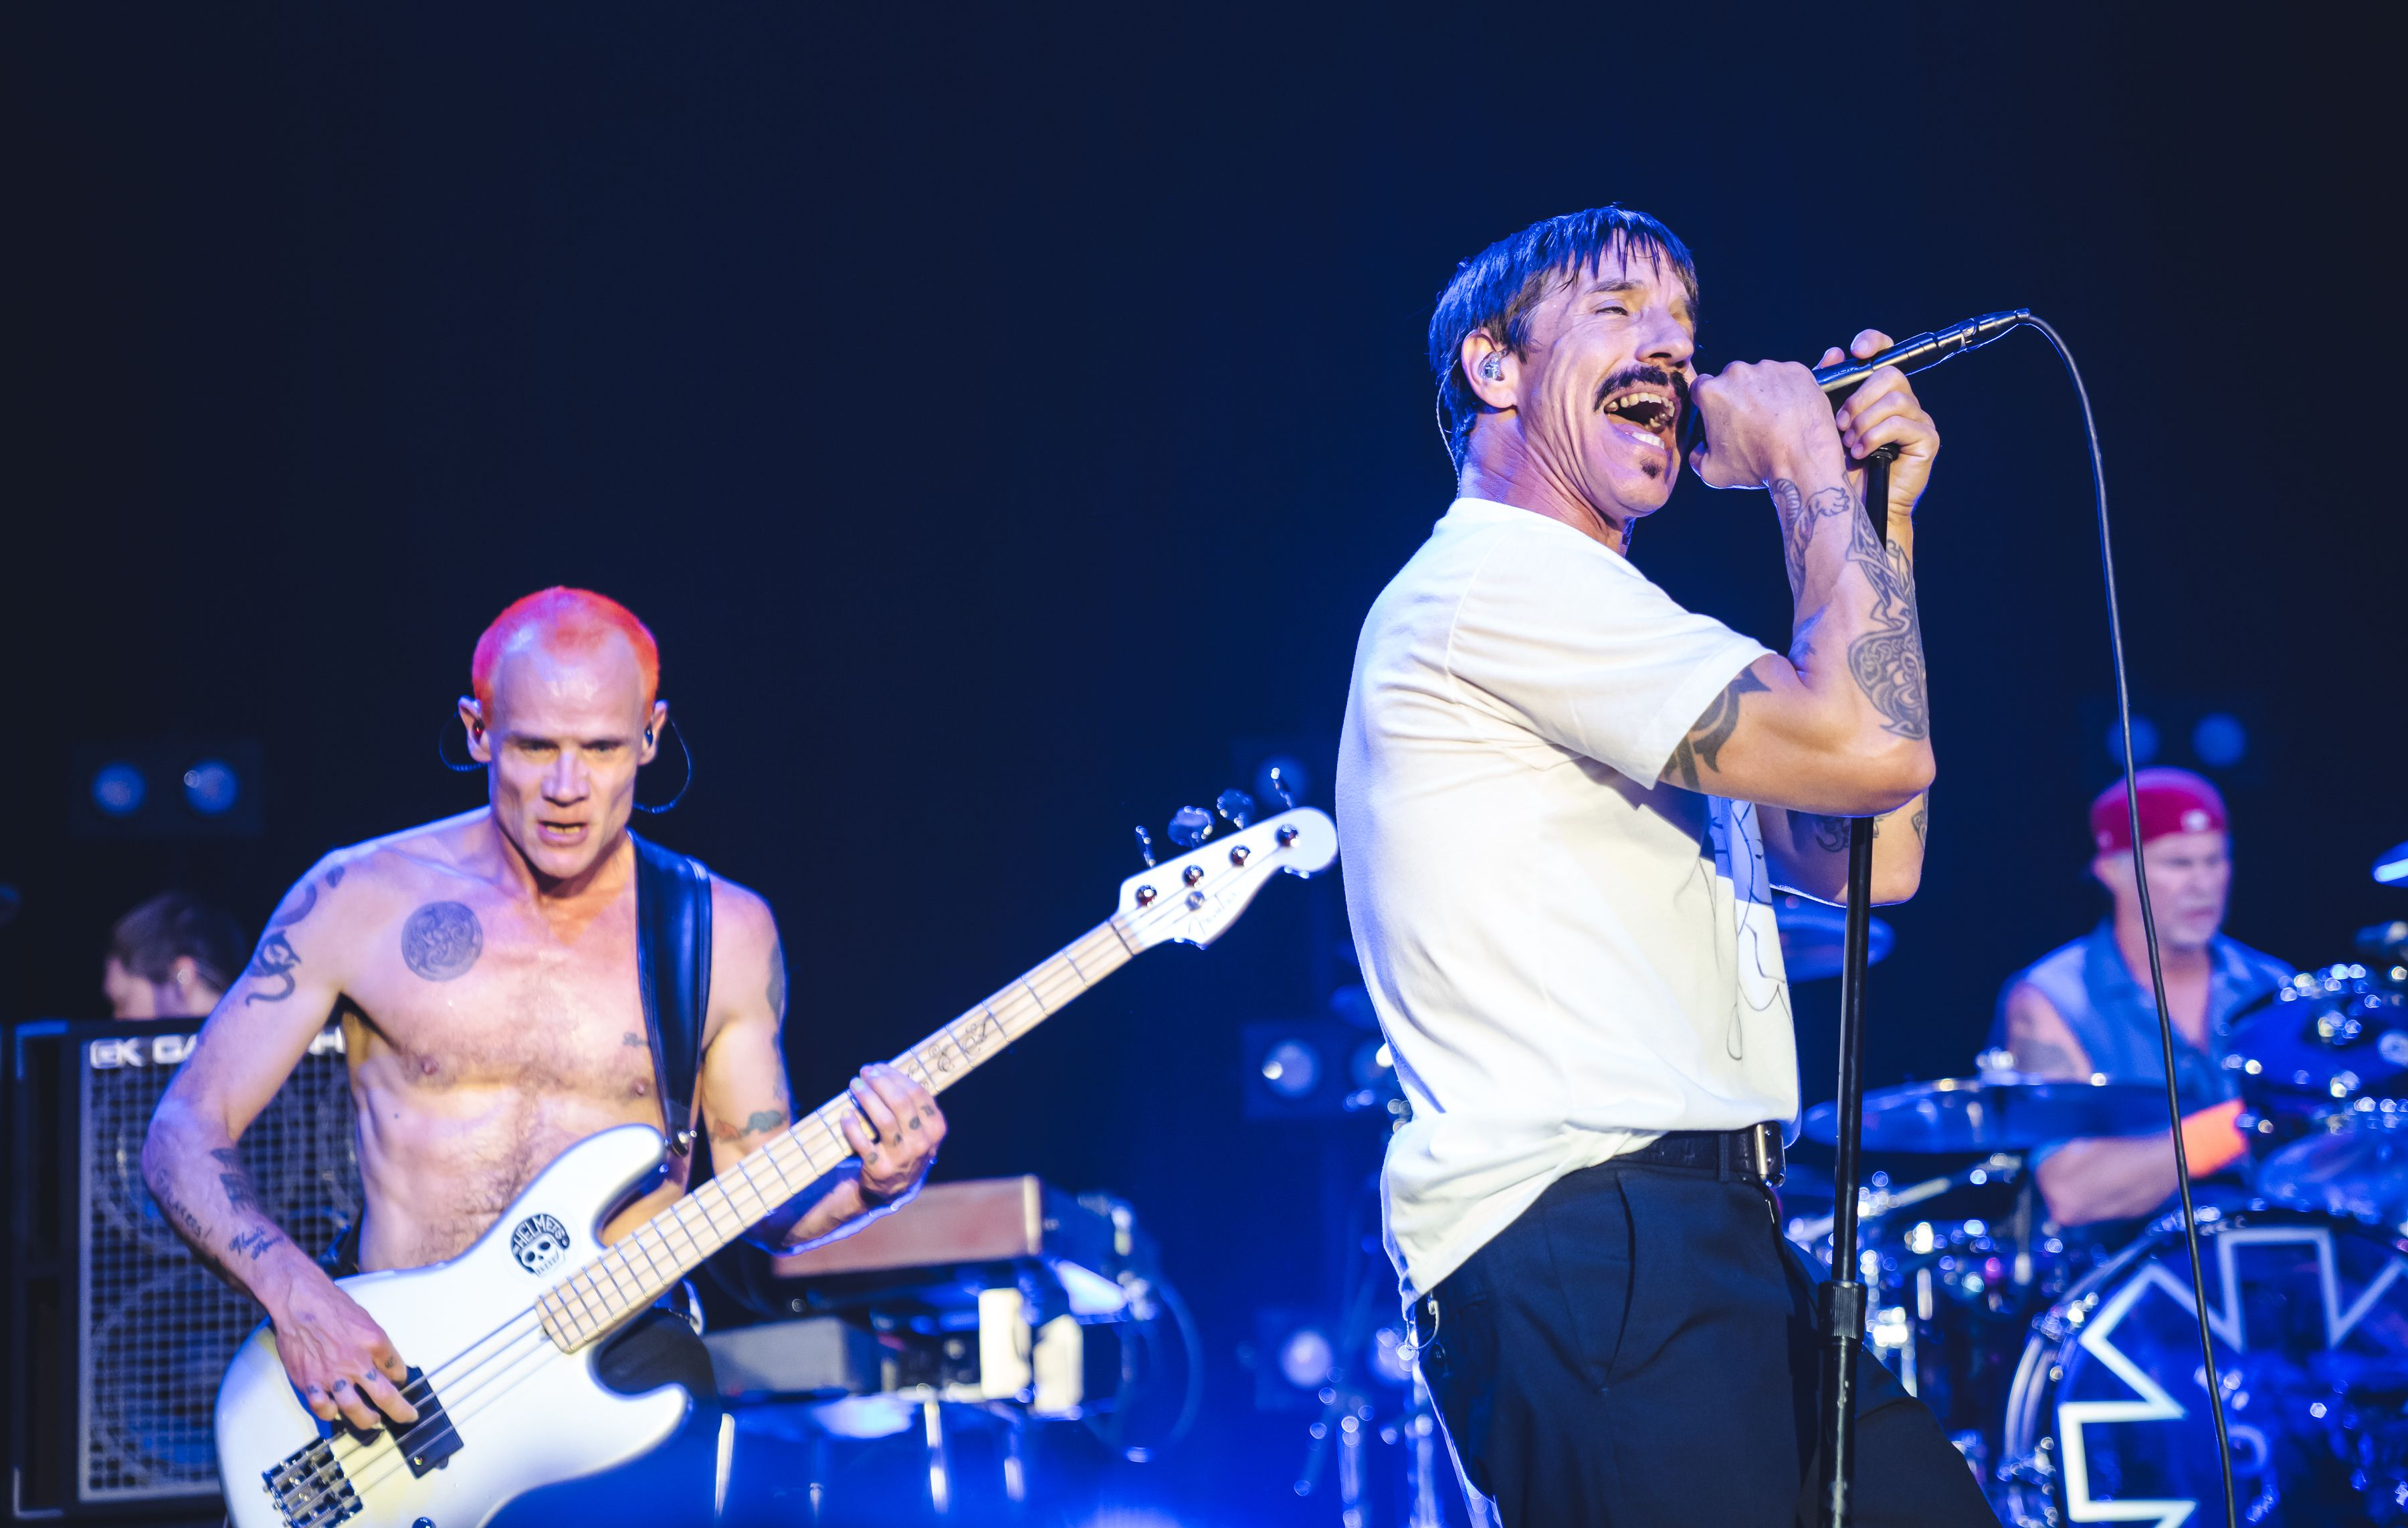 red hot chili peppers - photo #37